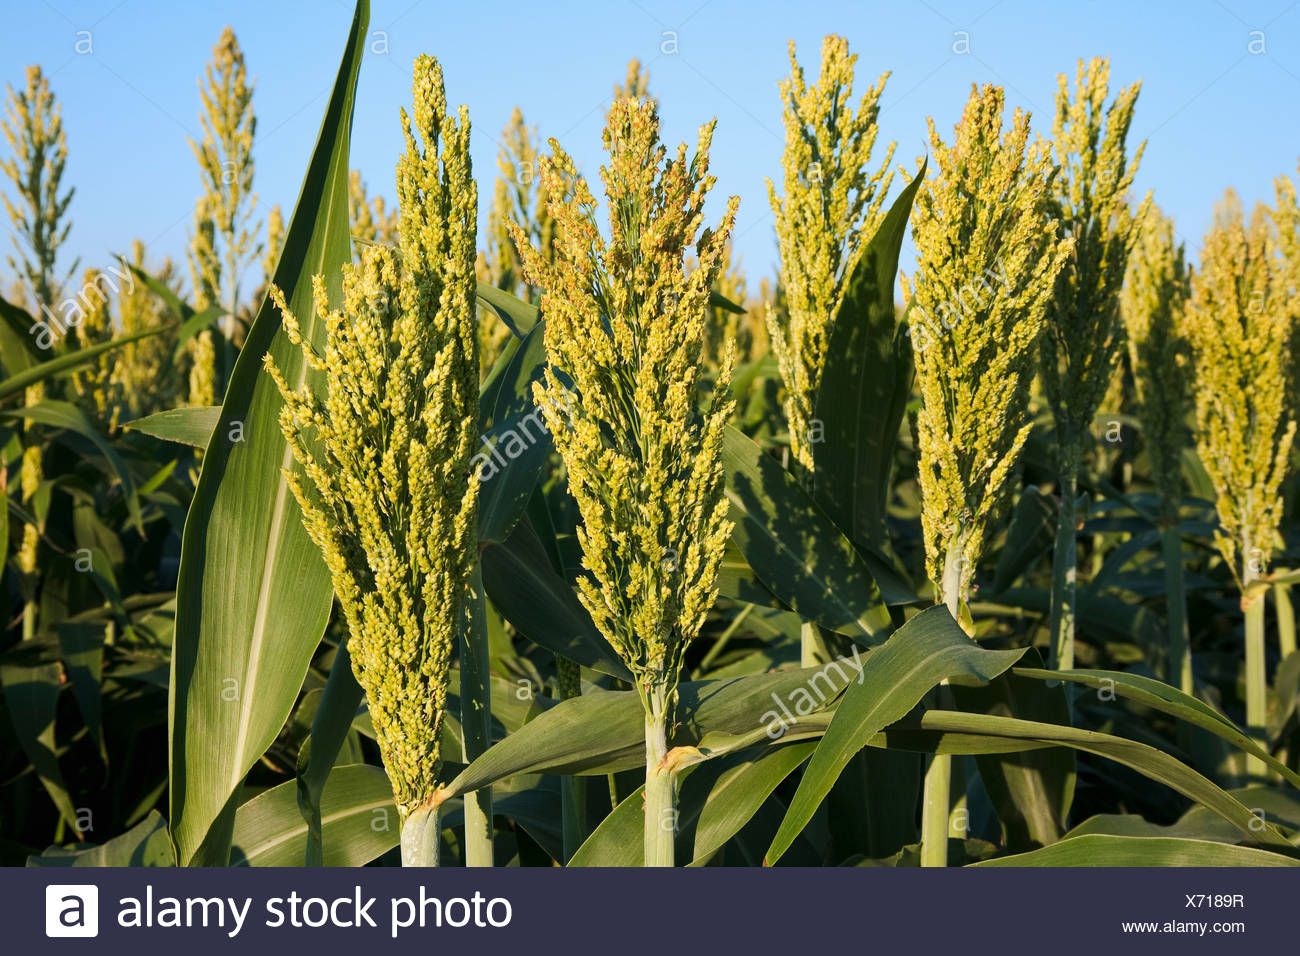 Agriculture - Closeup of grain sorghum (milo) plants with fully formed and maturing heads / Arkansas, USA. - Stock Image